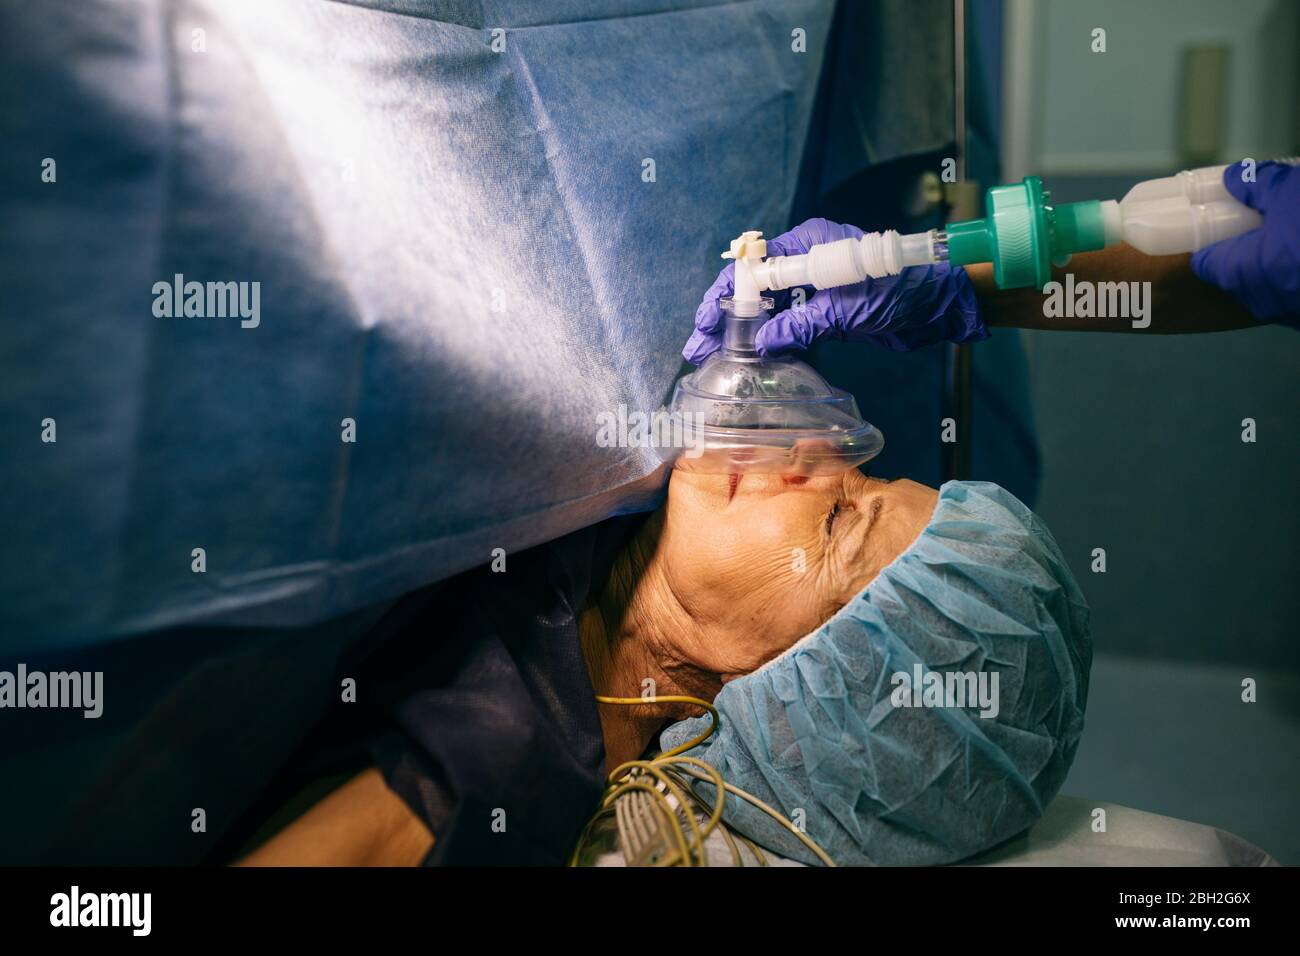 Anesthetist applying anesthesia machine to patient in operating room Stock Photo